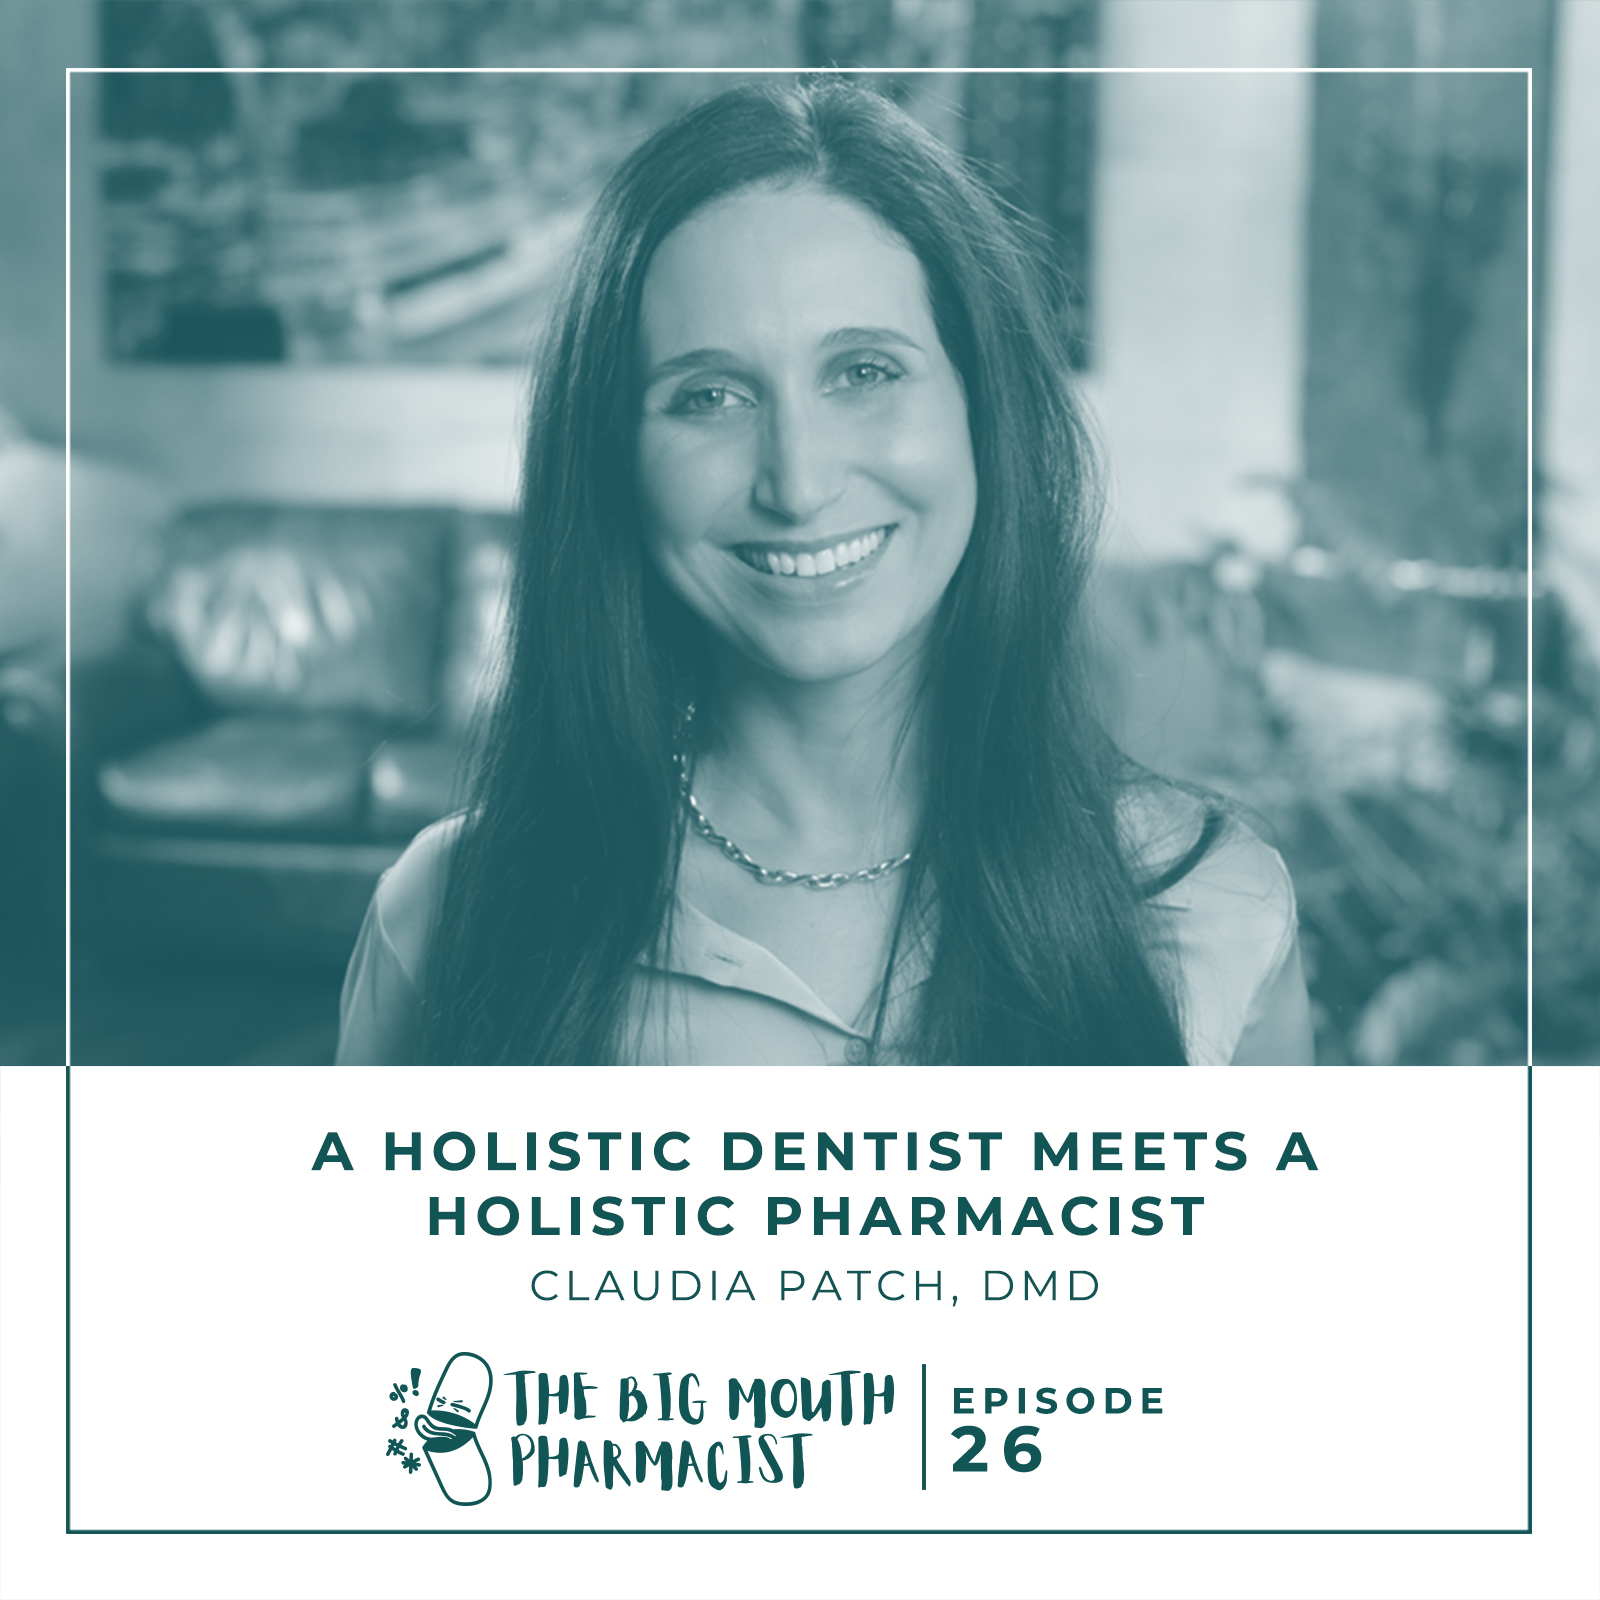 #26 A Holistic Dentist Meets A Holistic Pharmacist with Dr. Claudia Patch - The Big Mouth Pharmacist